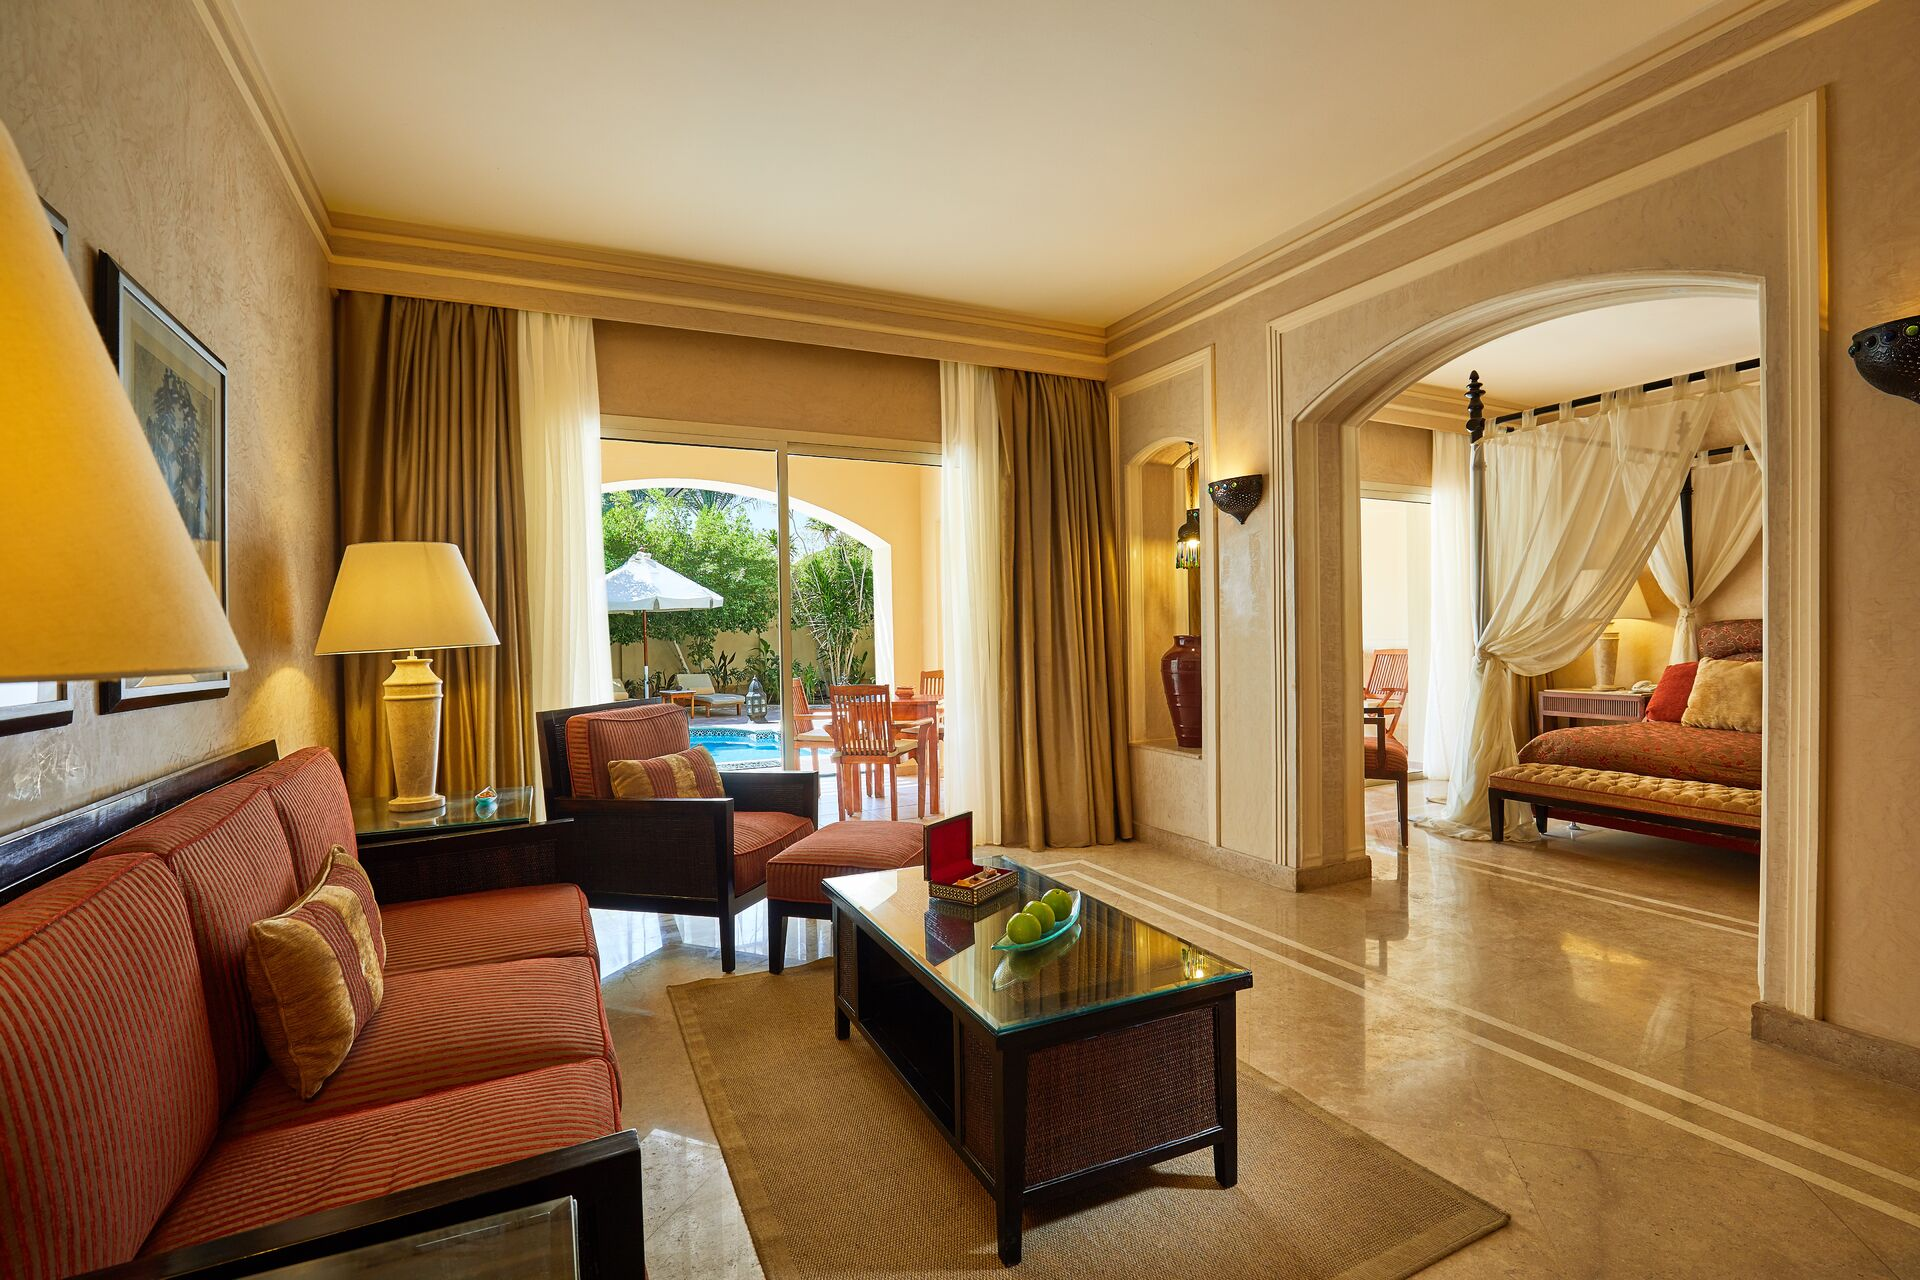 https://cms.satur.sk/data/imgs/tour_image/orig/royal-suite-with-private-pool-2-020118-1947558.jpg